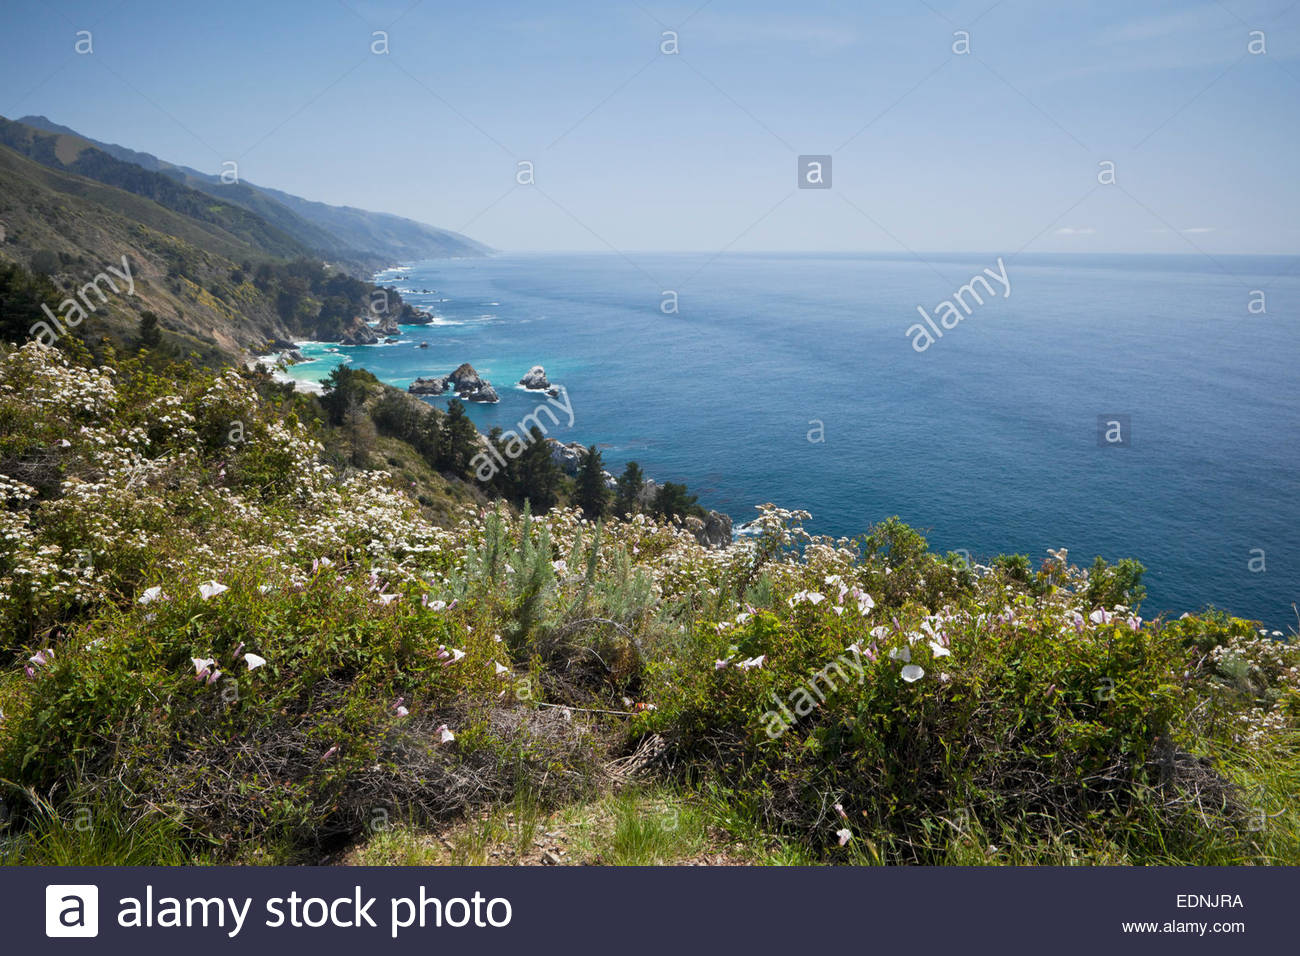 Spring Wildflowers on Scenic Bluff Along Pacific Coast, Big Sur, California - Stock Image